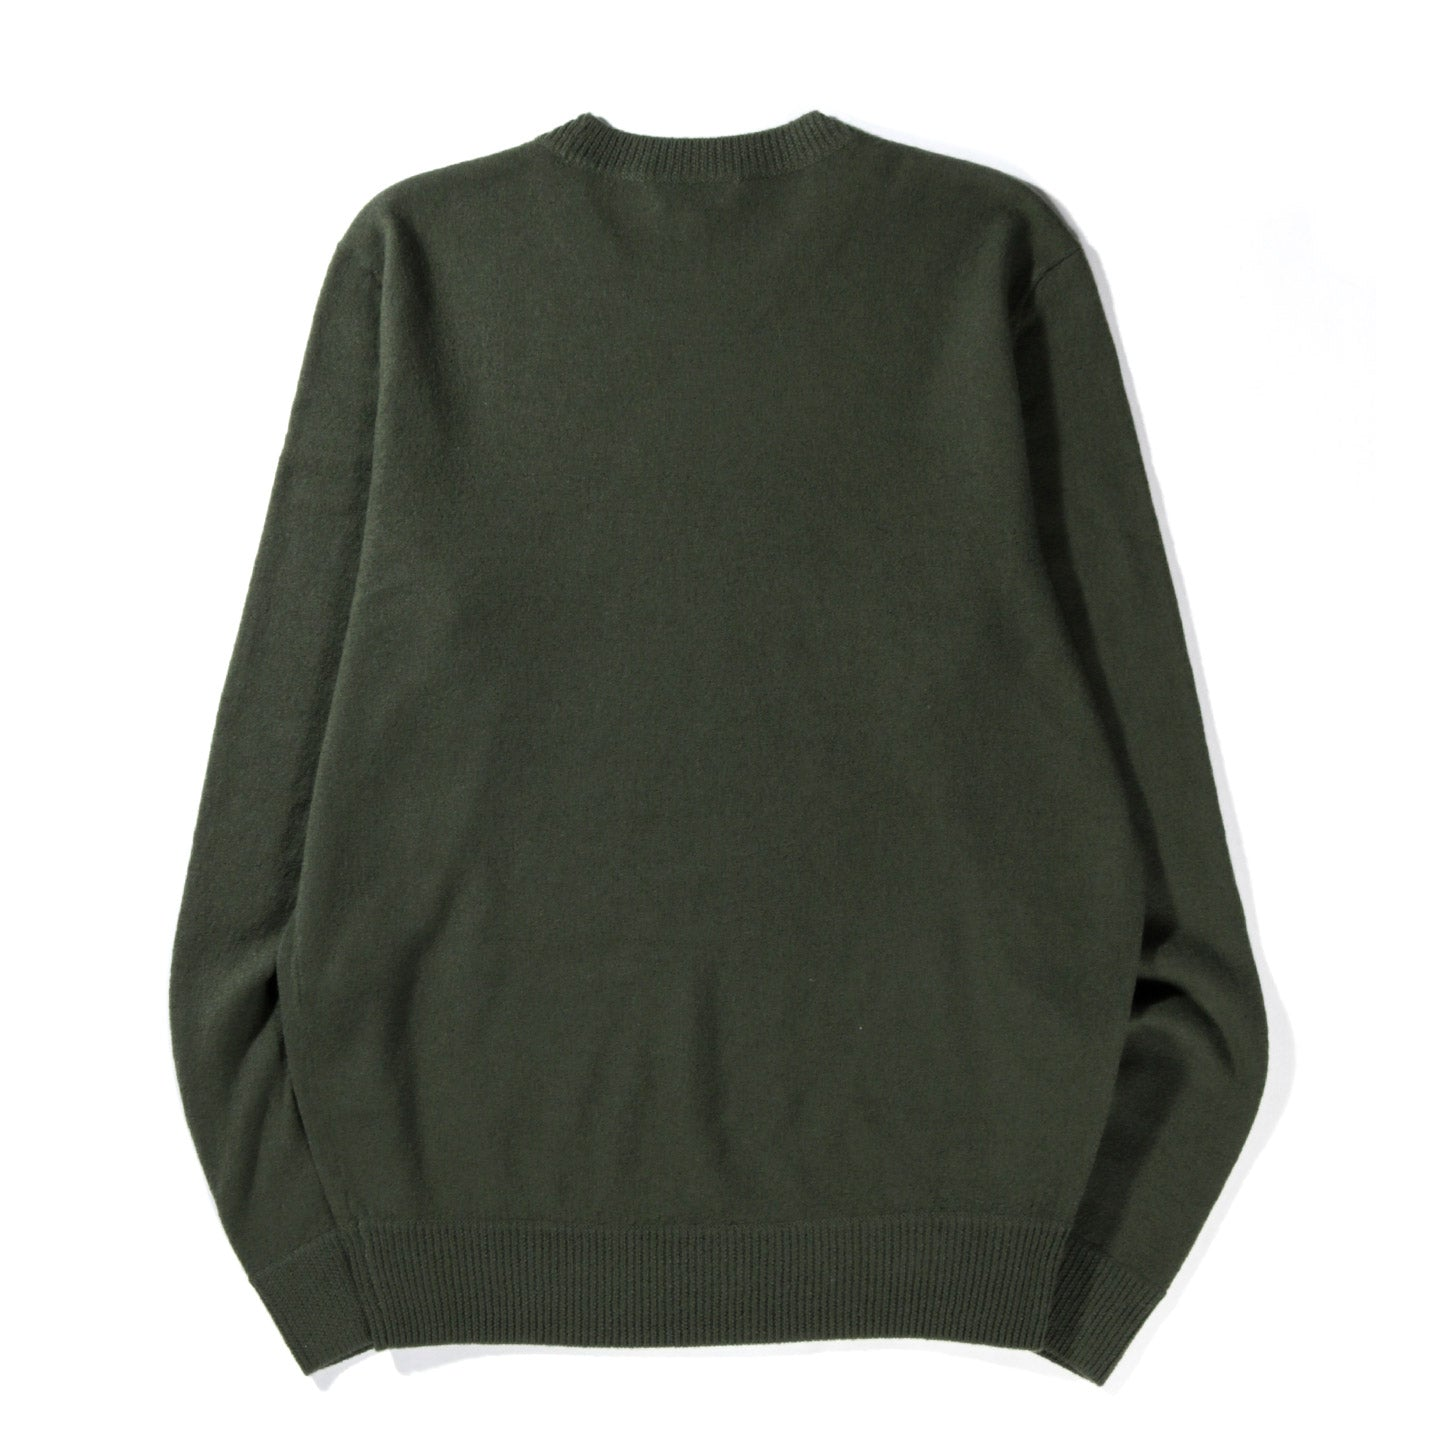 A.P.C. HAN SWEATER MILITARY KHAKI